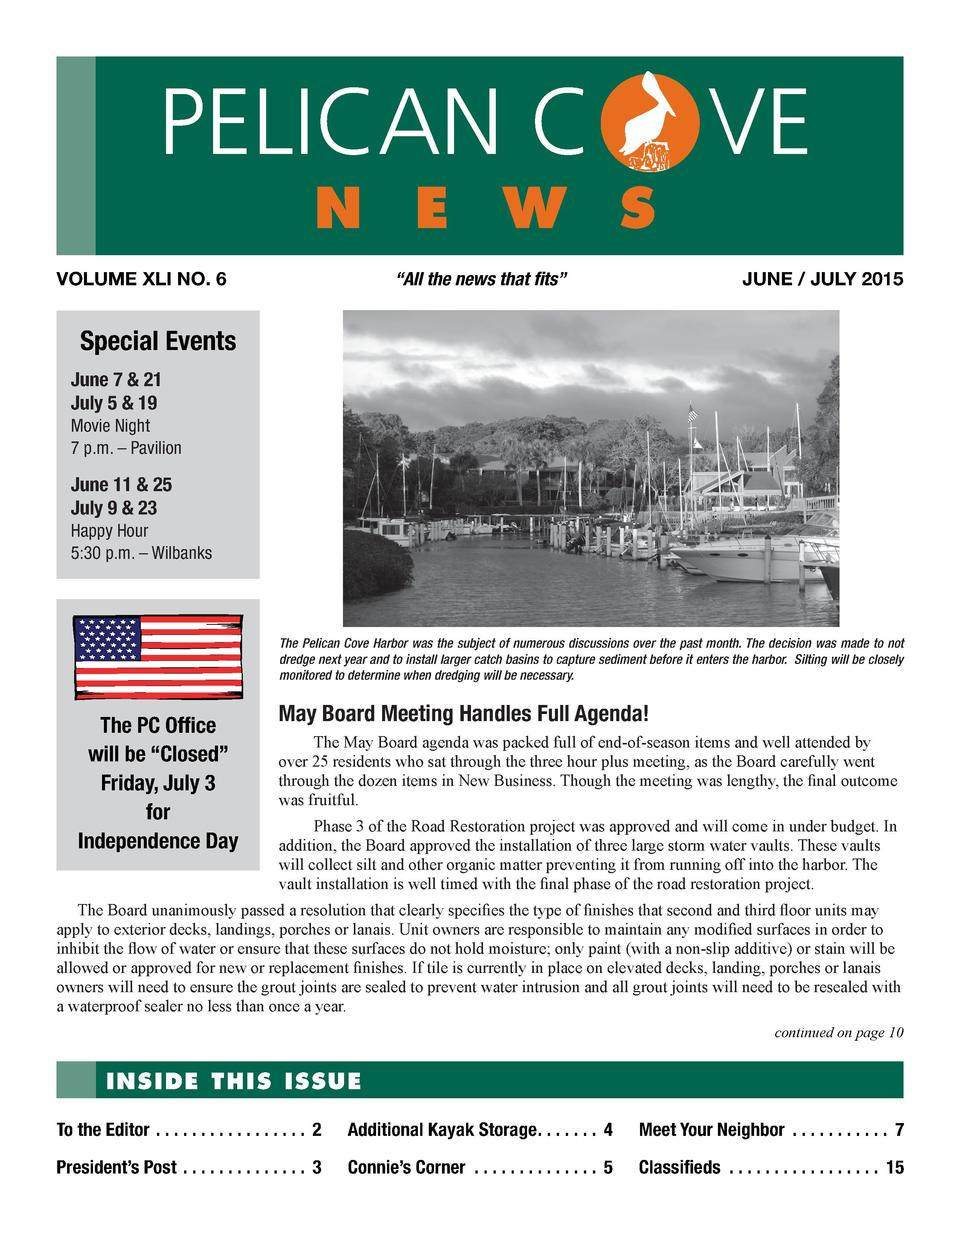 PELICAN C  n e w s  VOLUME XLI NO. 6  VE JUNE   JULY 2015     All the news that fits     Special Events June 7   21 July 5...